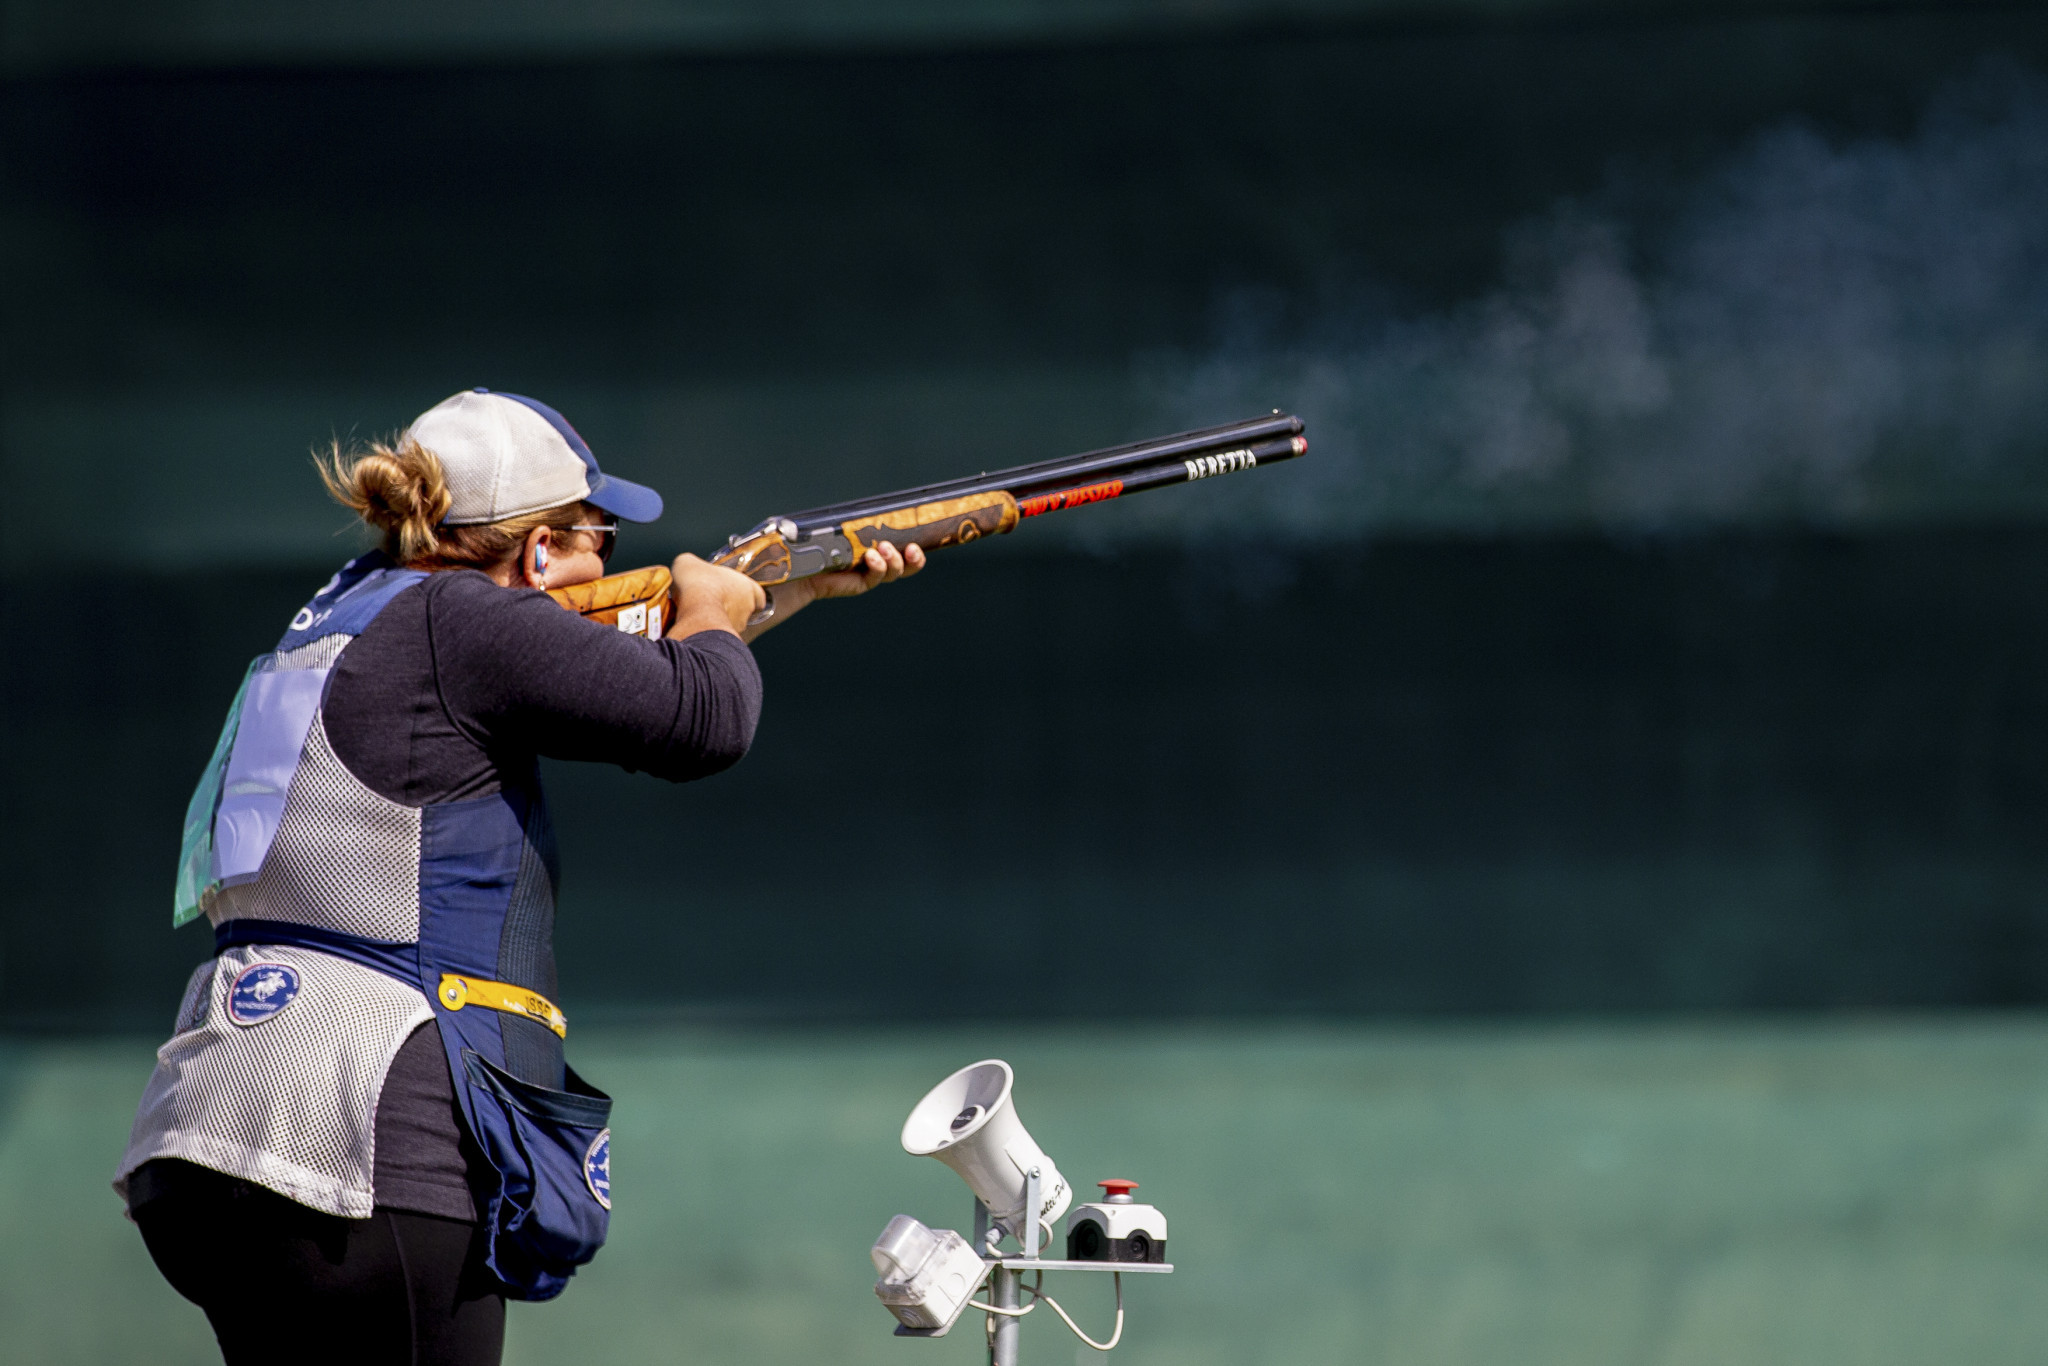 Rhode achieves third Pan American shooting title at Lima 2019